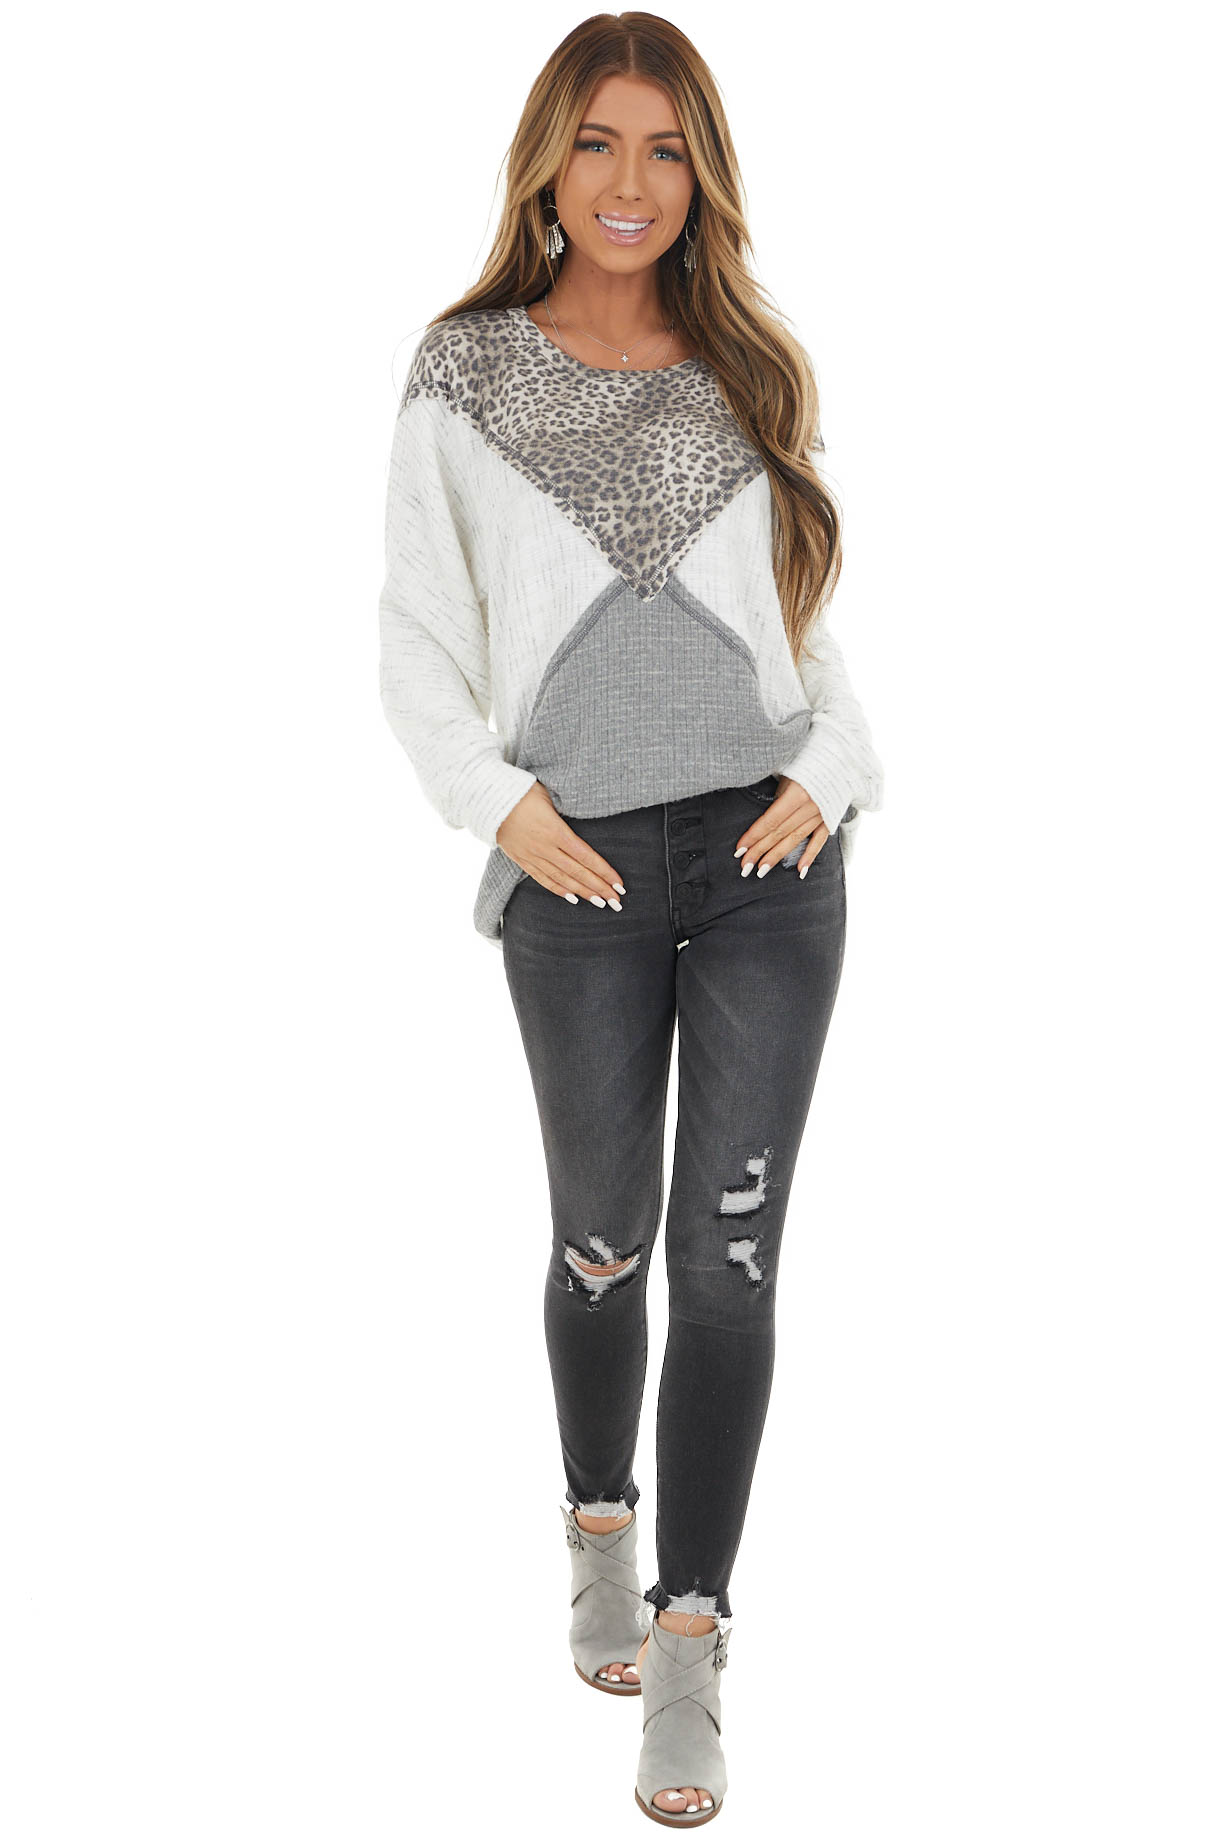 Heathered Ivory Leopard Print and Colorblock Long Sleeve Top